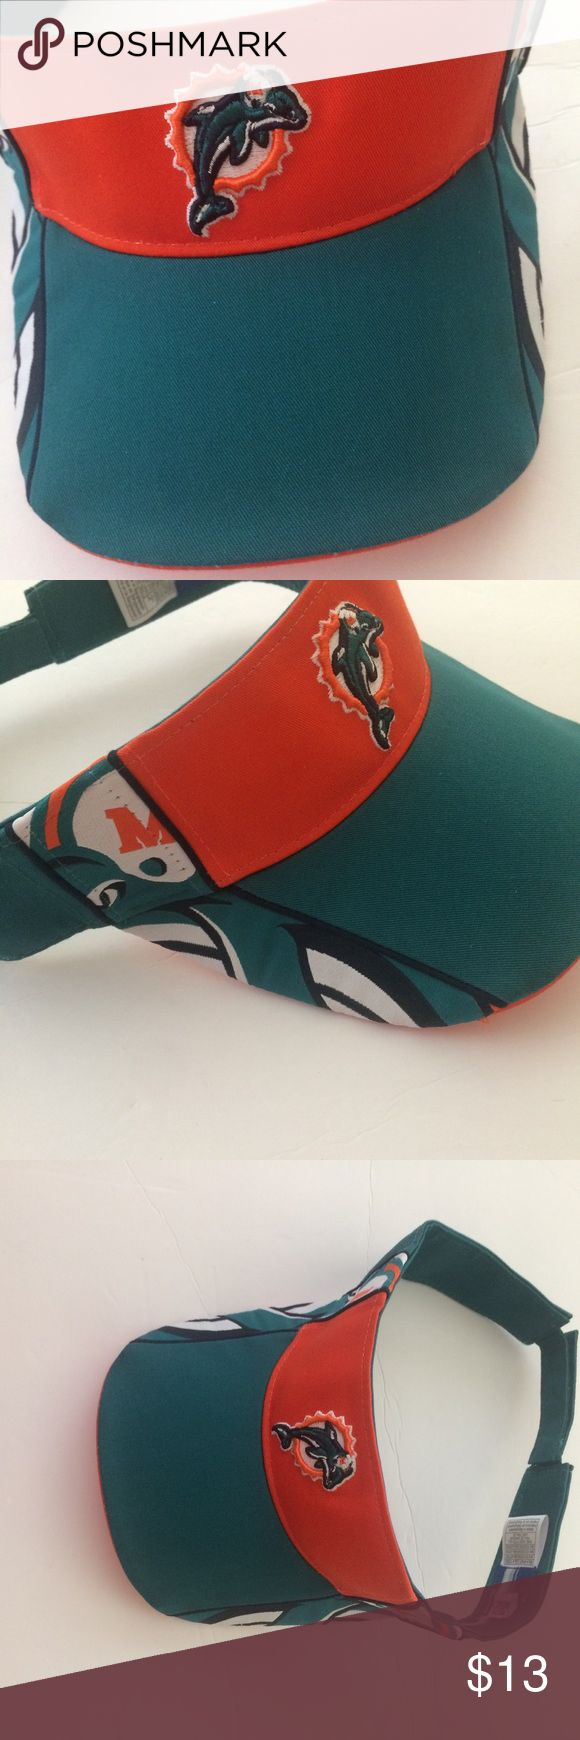 Miami Dolphins NFL Football Visor Reebox Gently used. Excellent condition.  One size fits all Reebok Accessories Hats